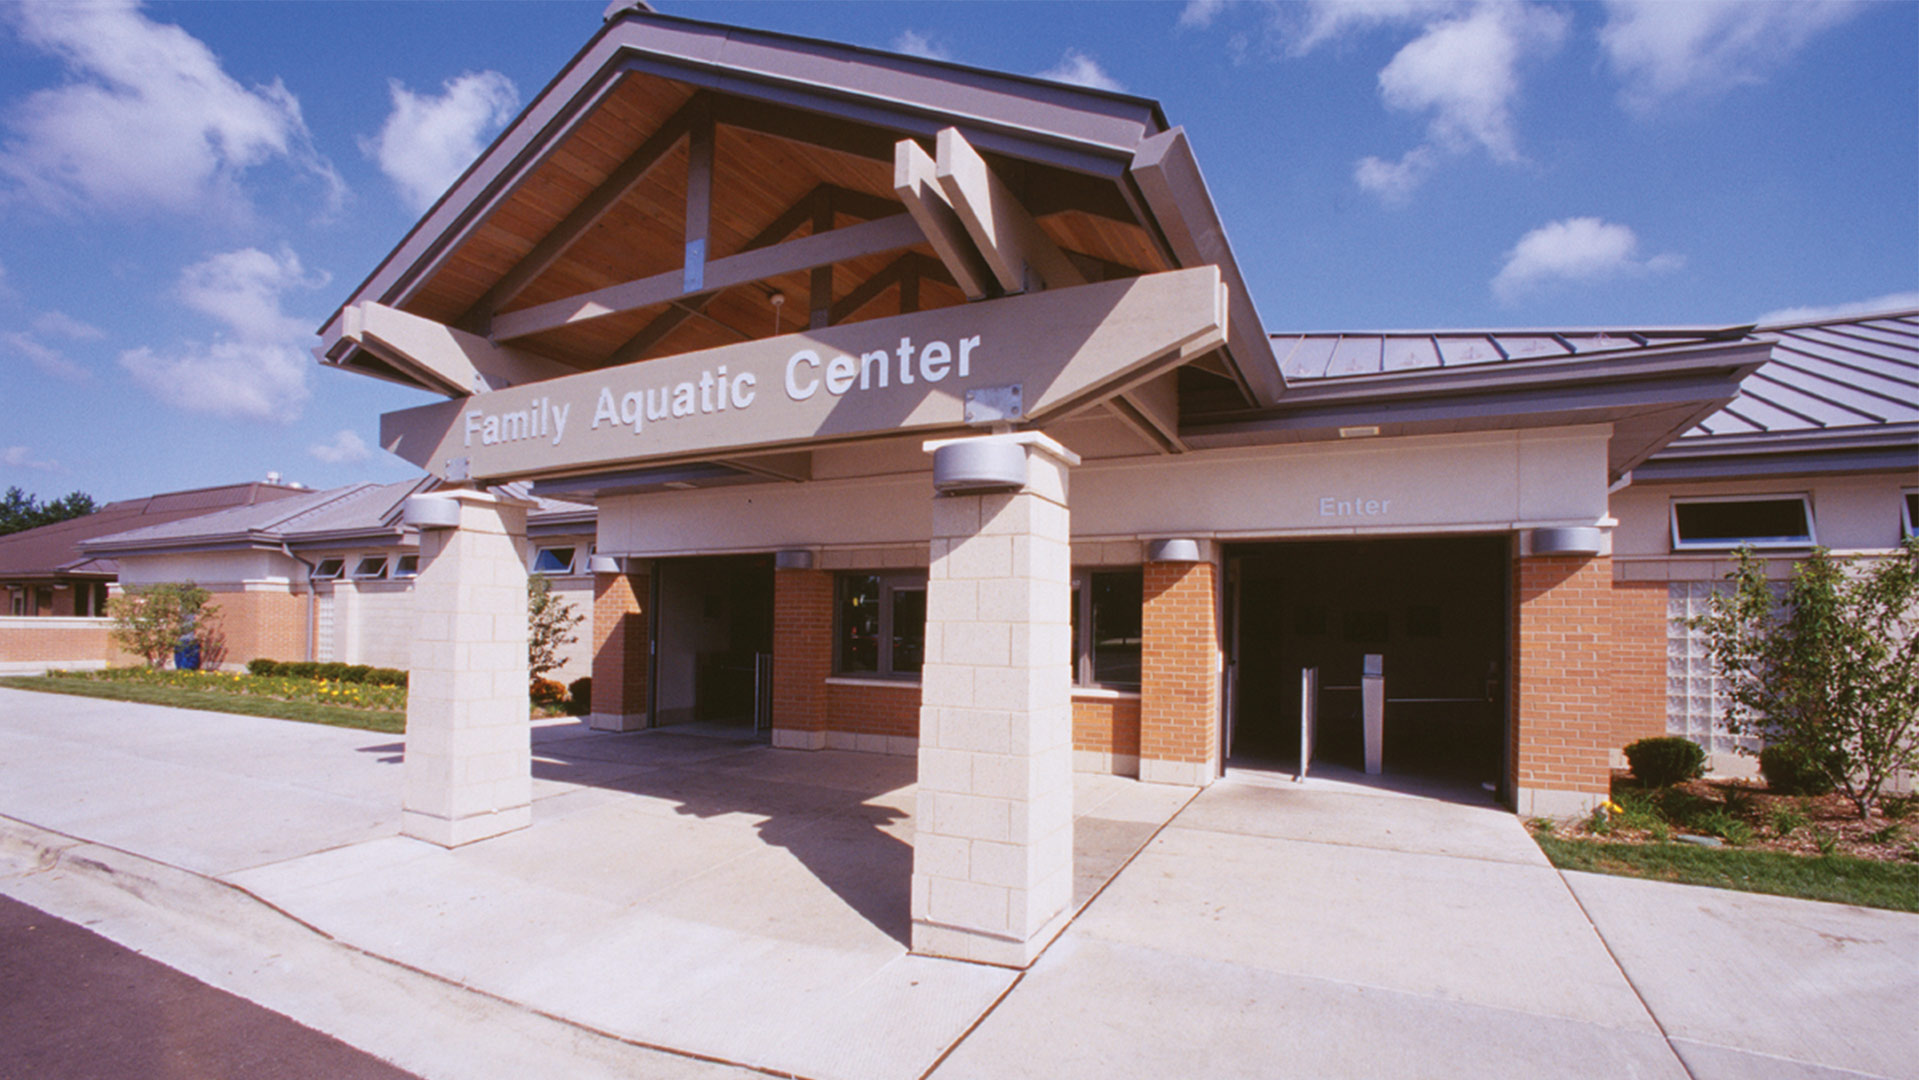 Wilmette Park District Family Aquatic Center